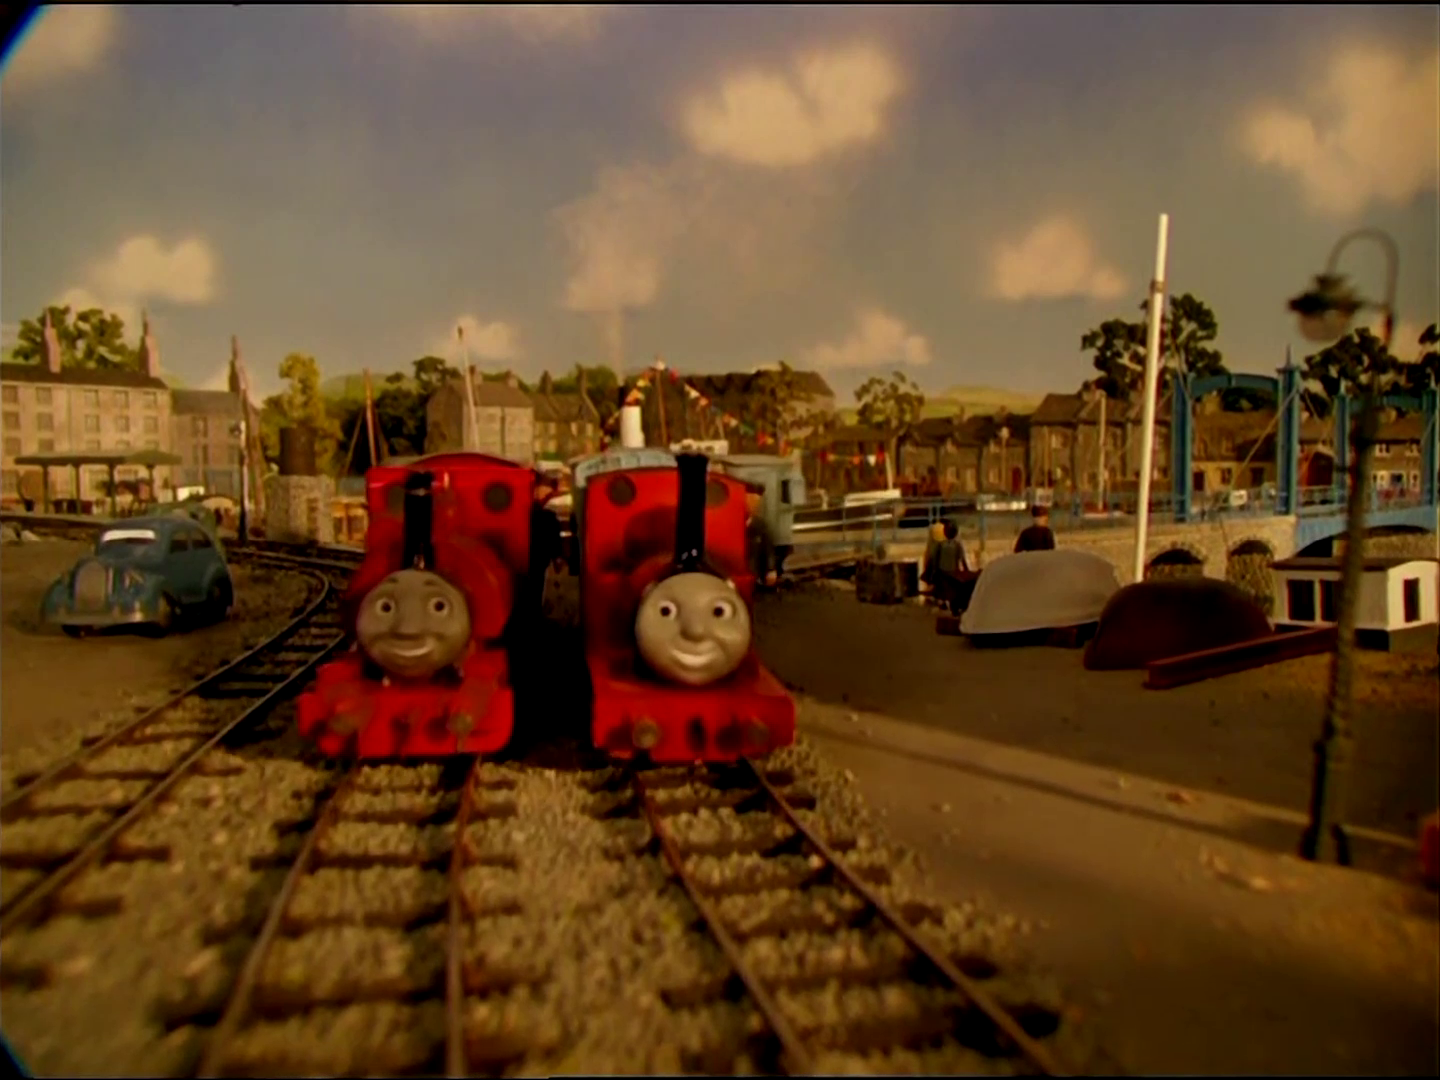 A Bad Day for Sir Handel/Gallery